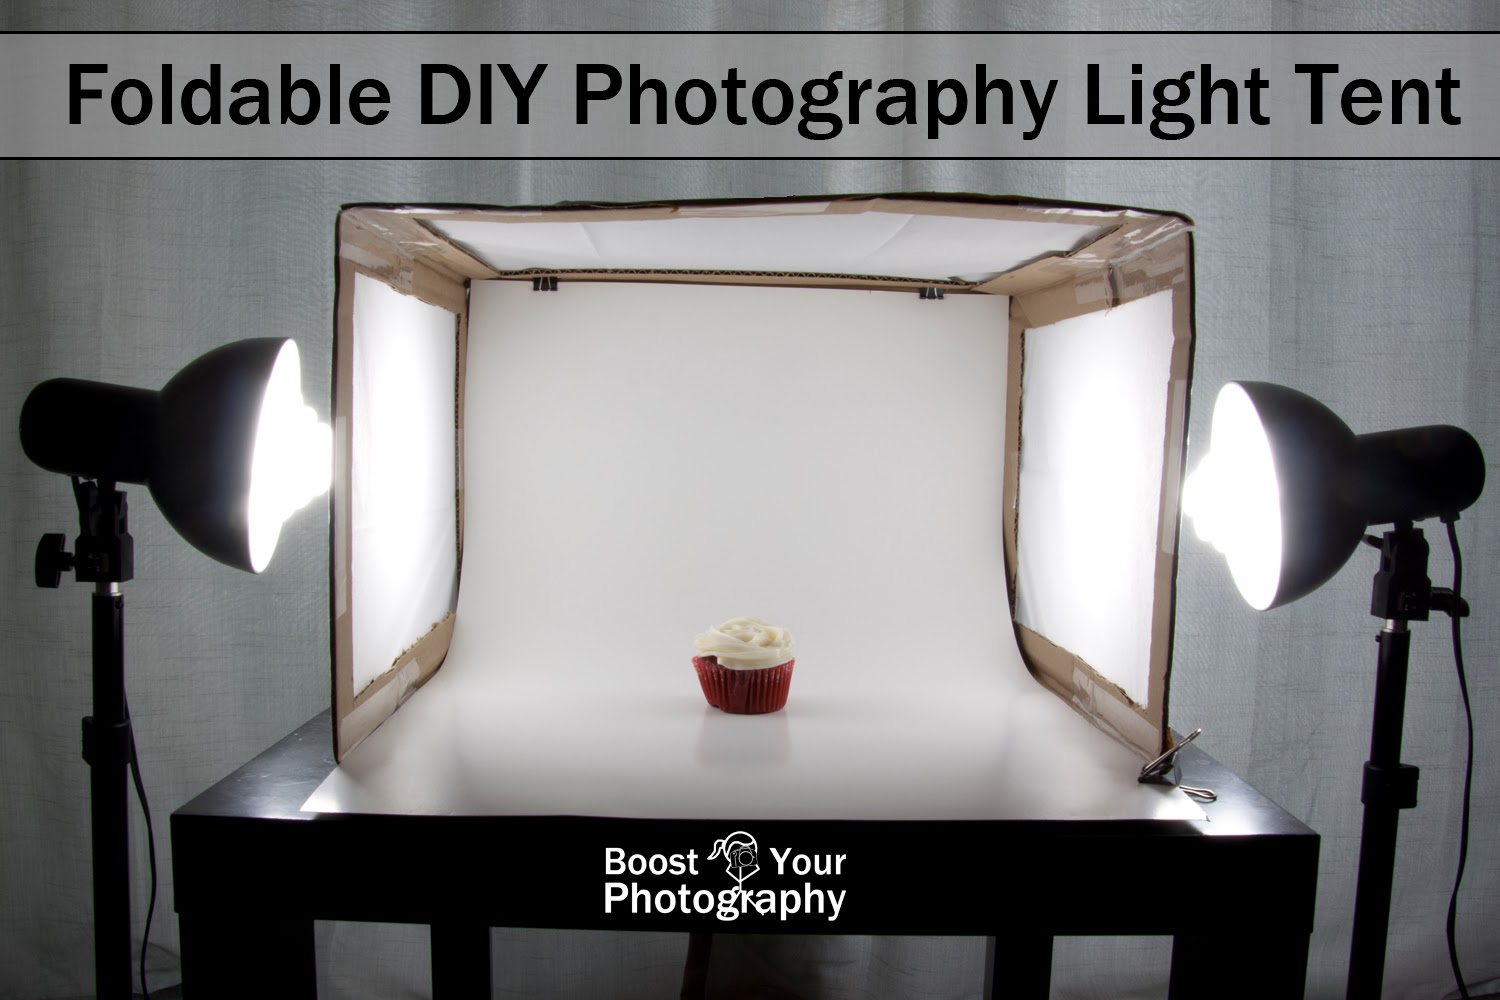 Foldable DIY Photography Light Tent | Boost Your Photography & DIY Photography Light Tent | Boost Your Photography